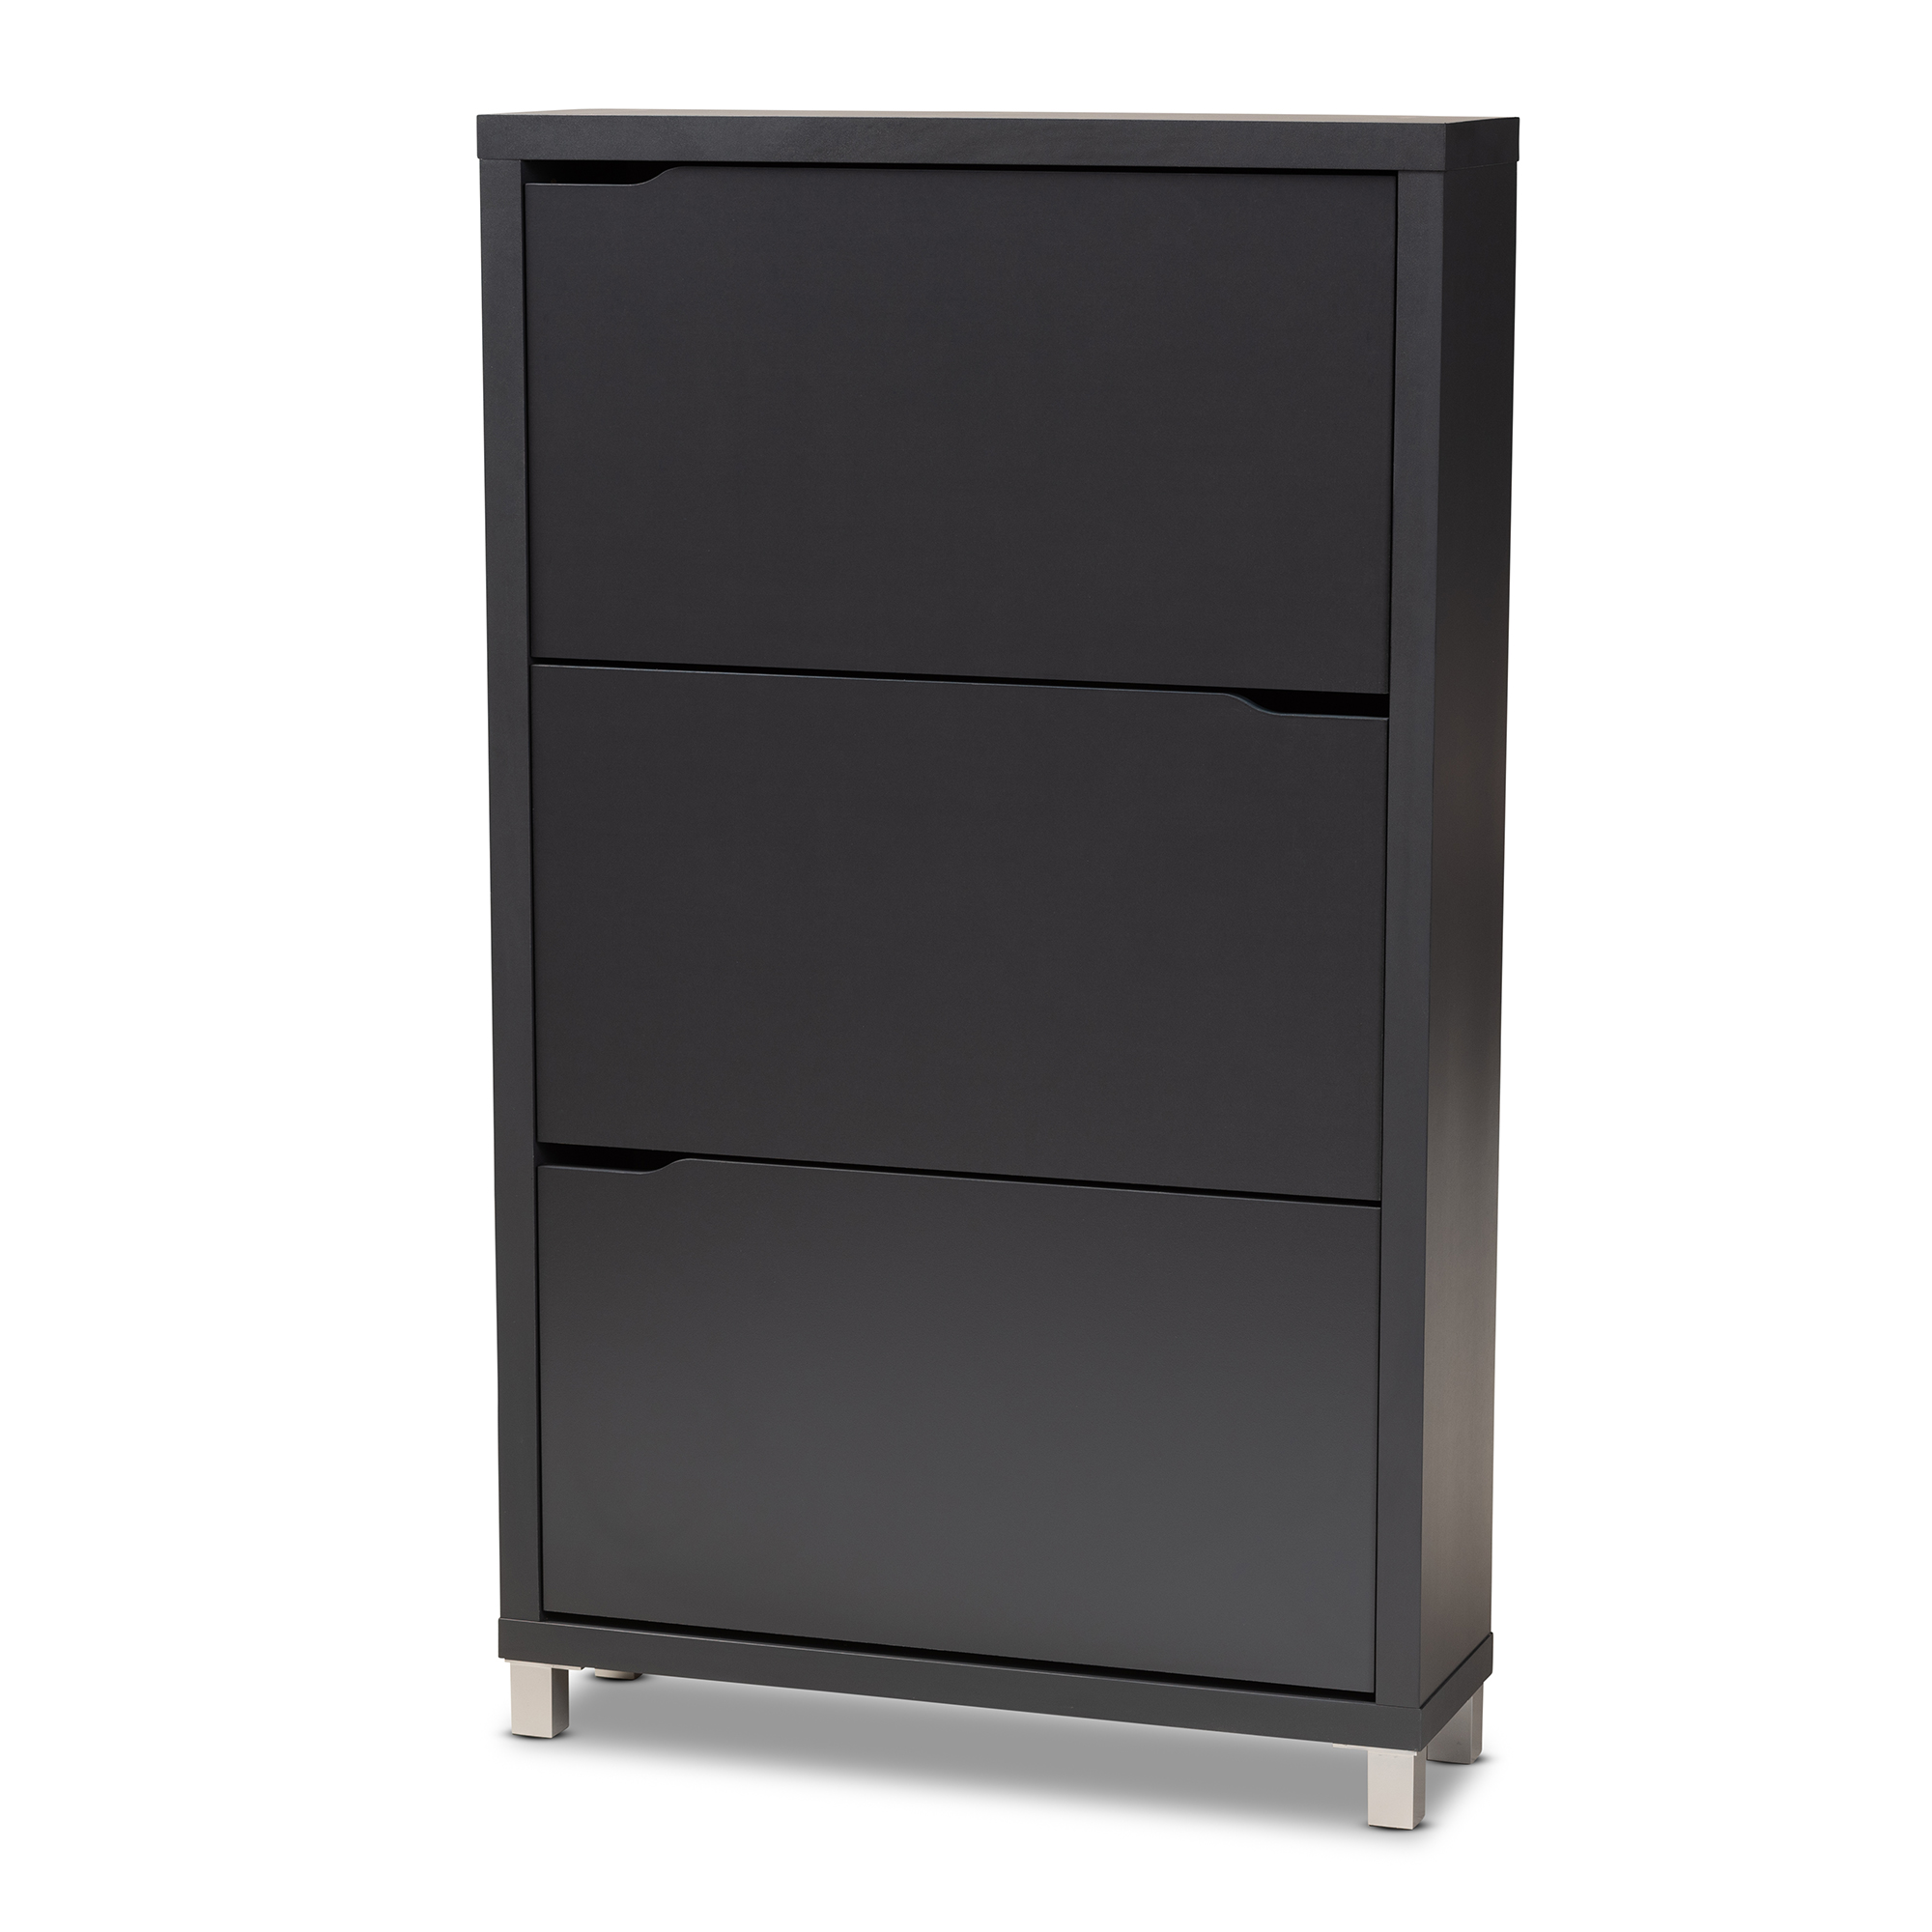 Baxton Studio Simms Modern And Contemporary Dark Grey Finished Wood Shoe Storage Cabinet With 6 Fold Out Racks